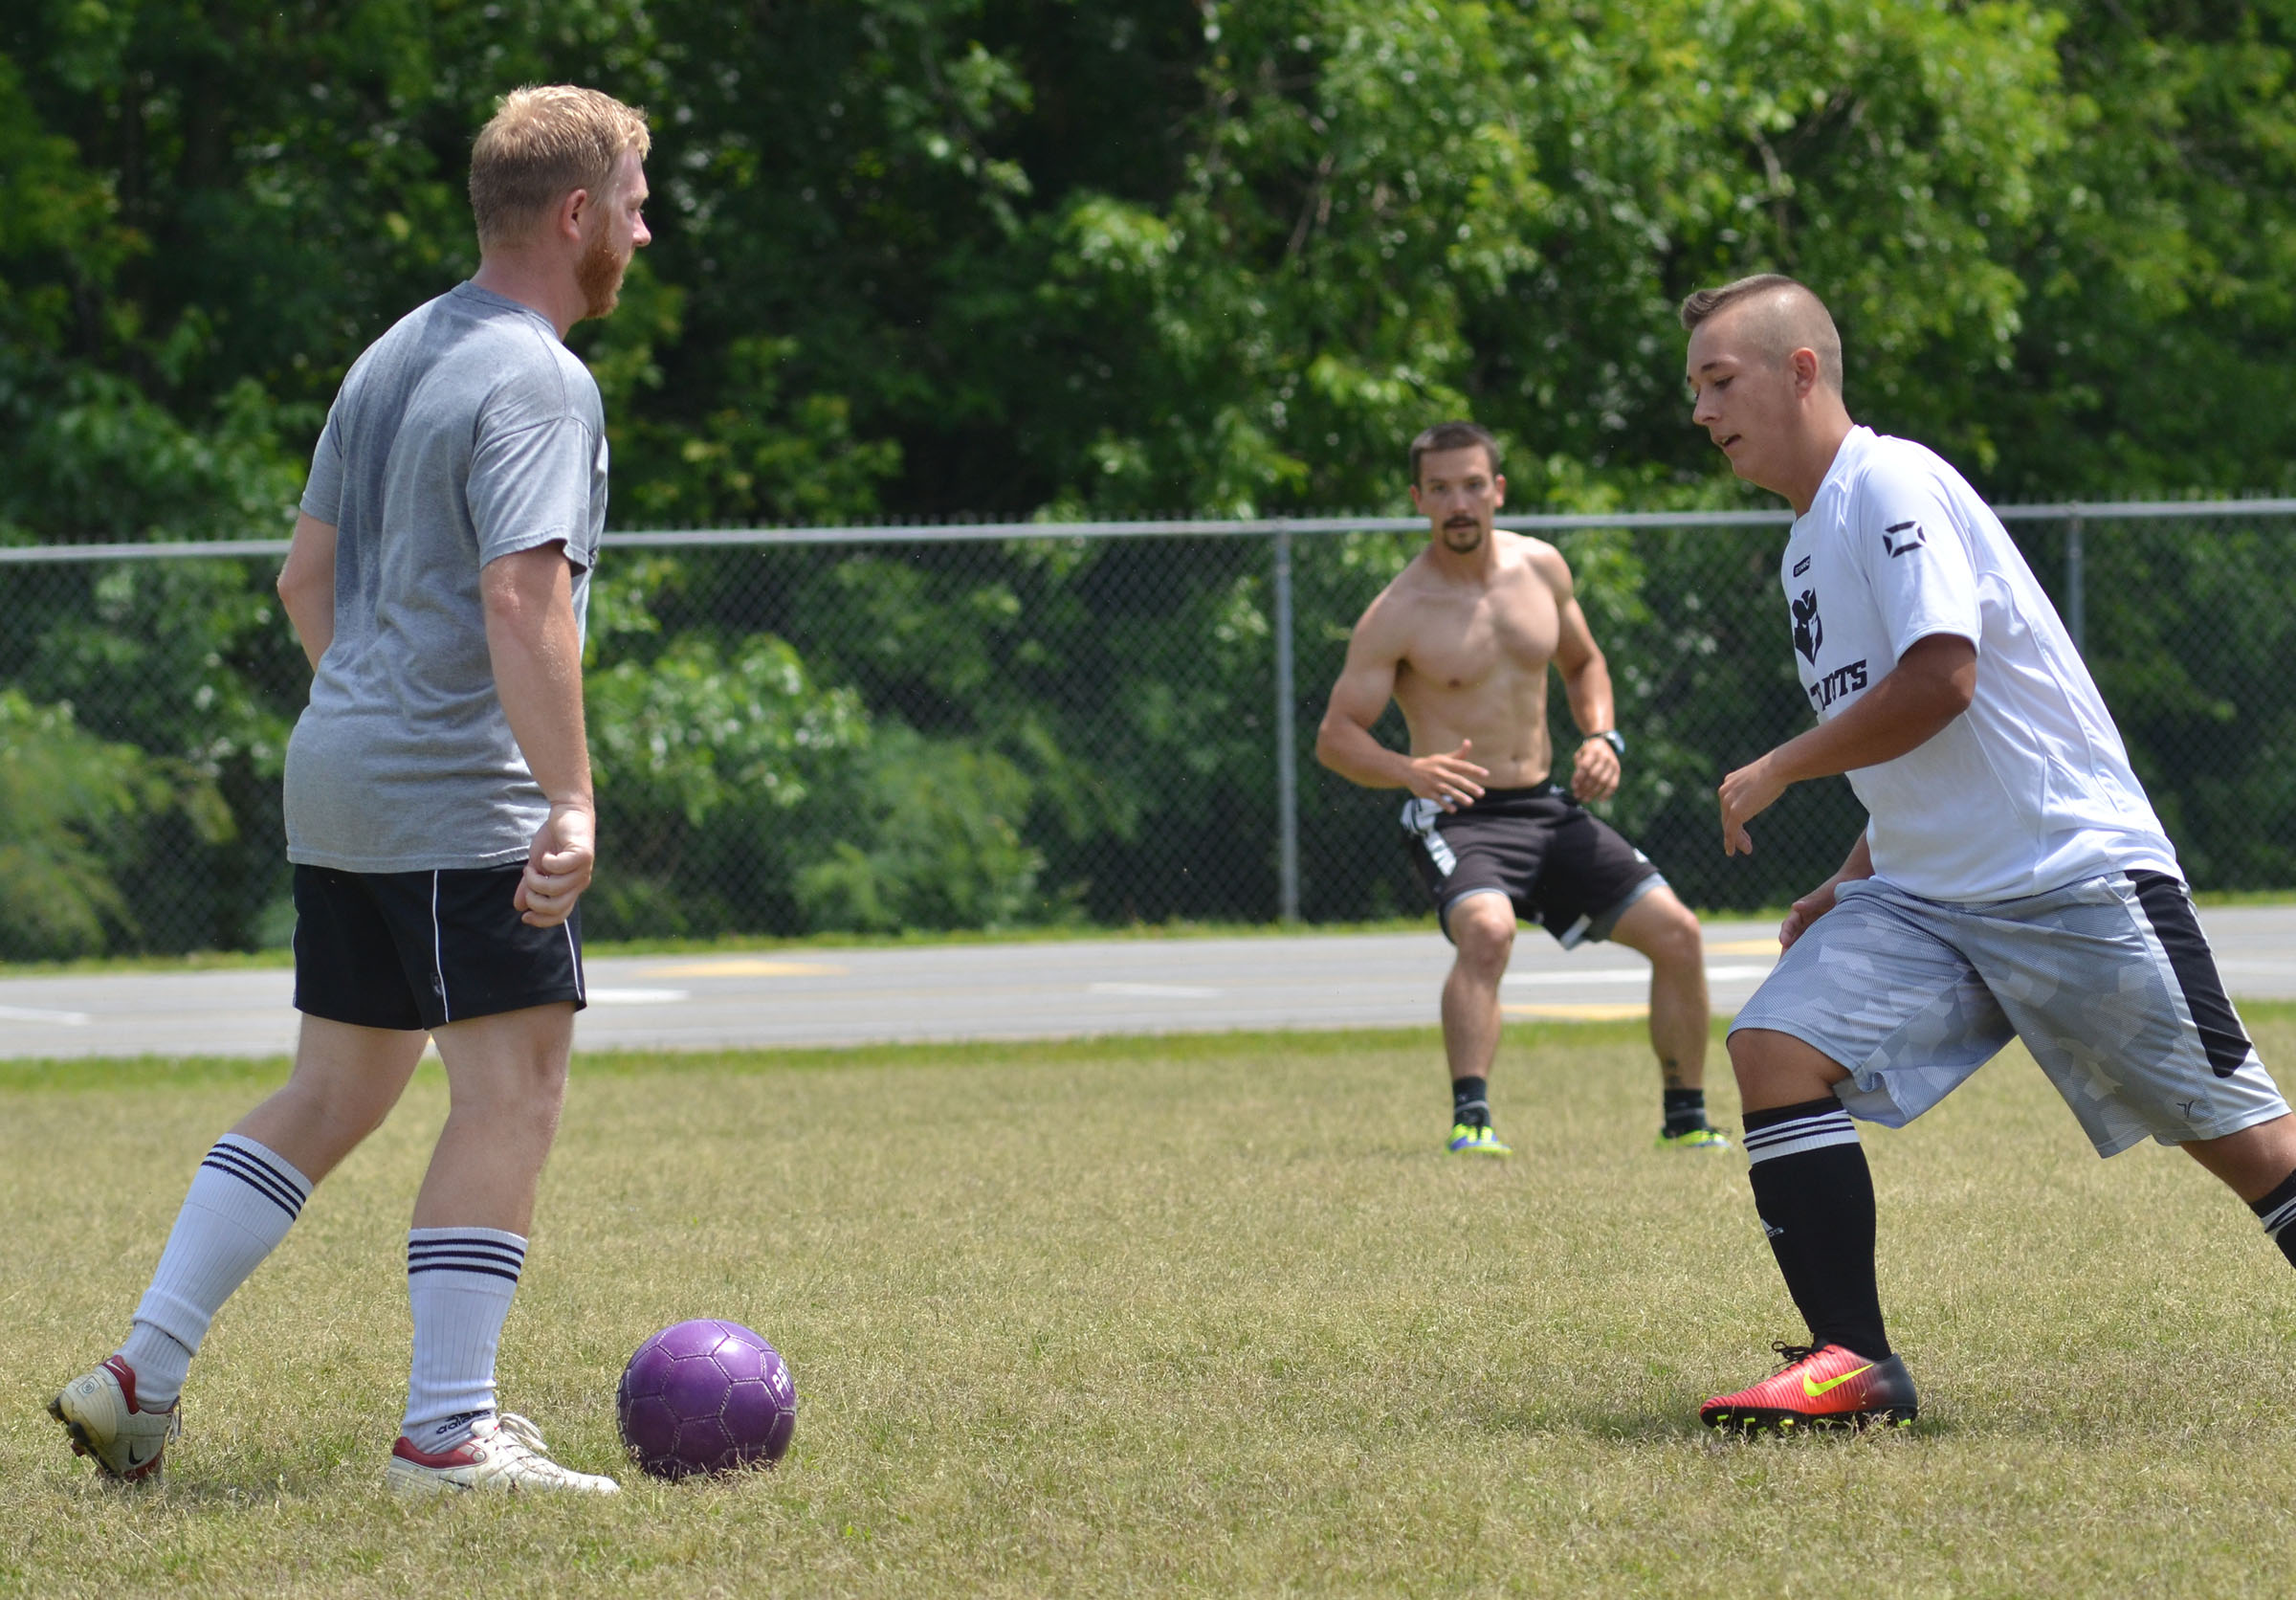 CHS soccer alumni player Luke Lawless gets set to kick the ball as senior Cody Davis plays defense.